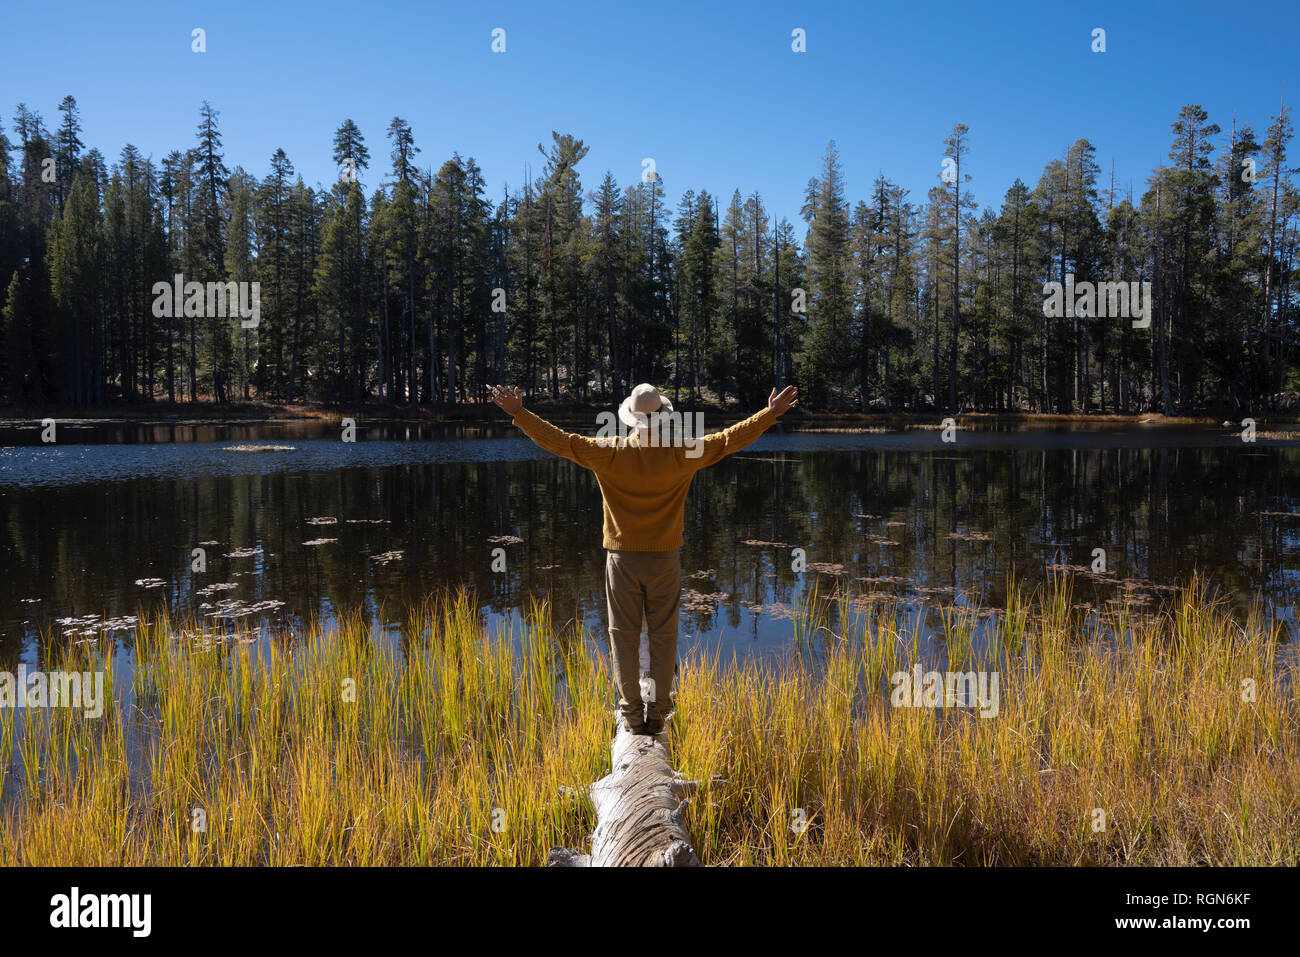 USA, California, Yosemite National Park, hiker standing on tree trunk in autumn - Stock Image